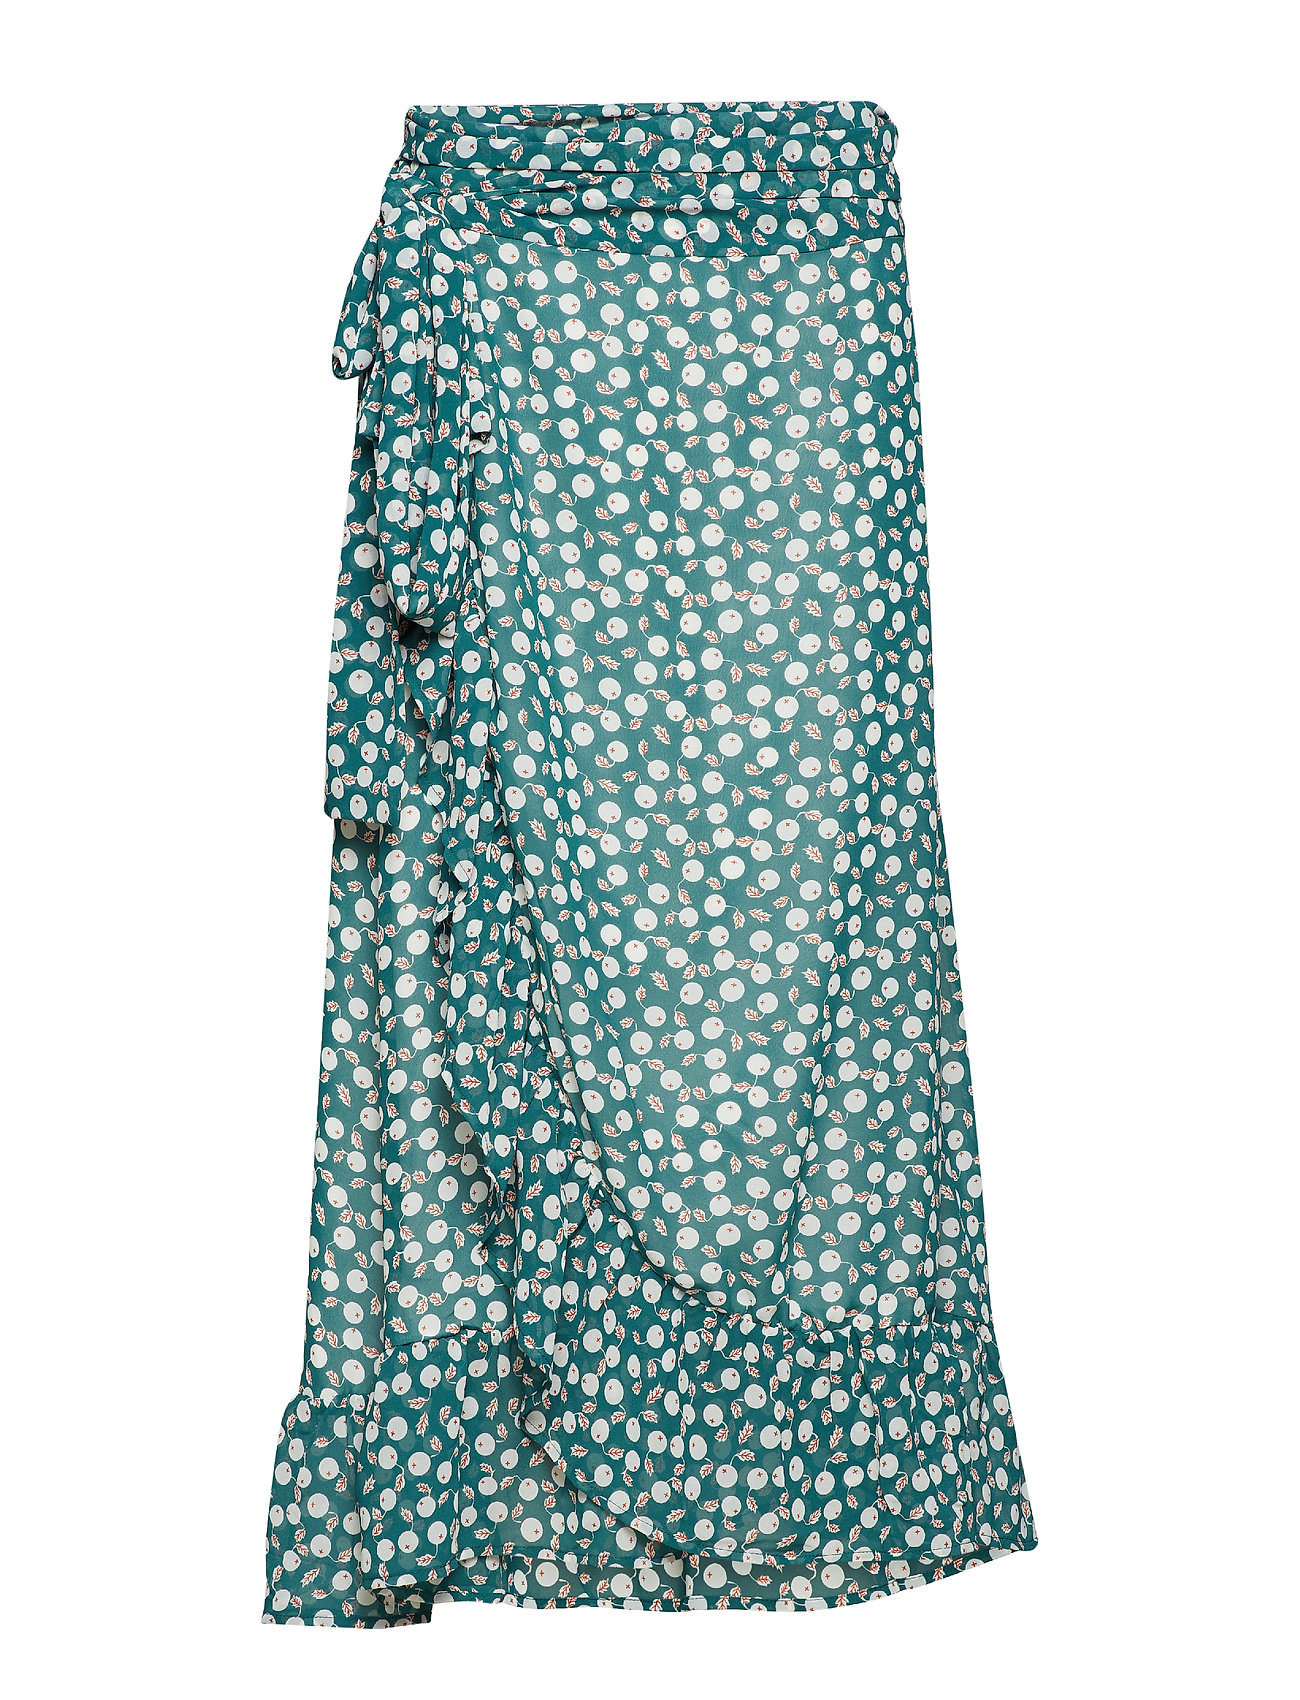 Lollys Laundry Amby Skirt - DARK GREEN